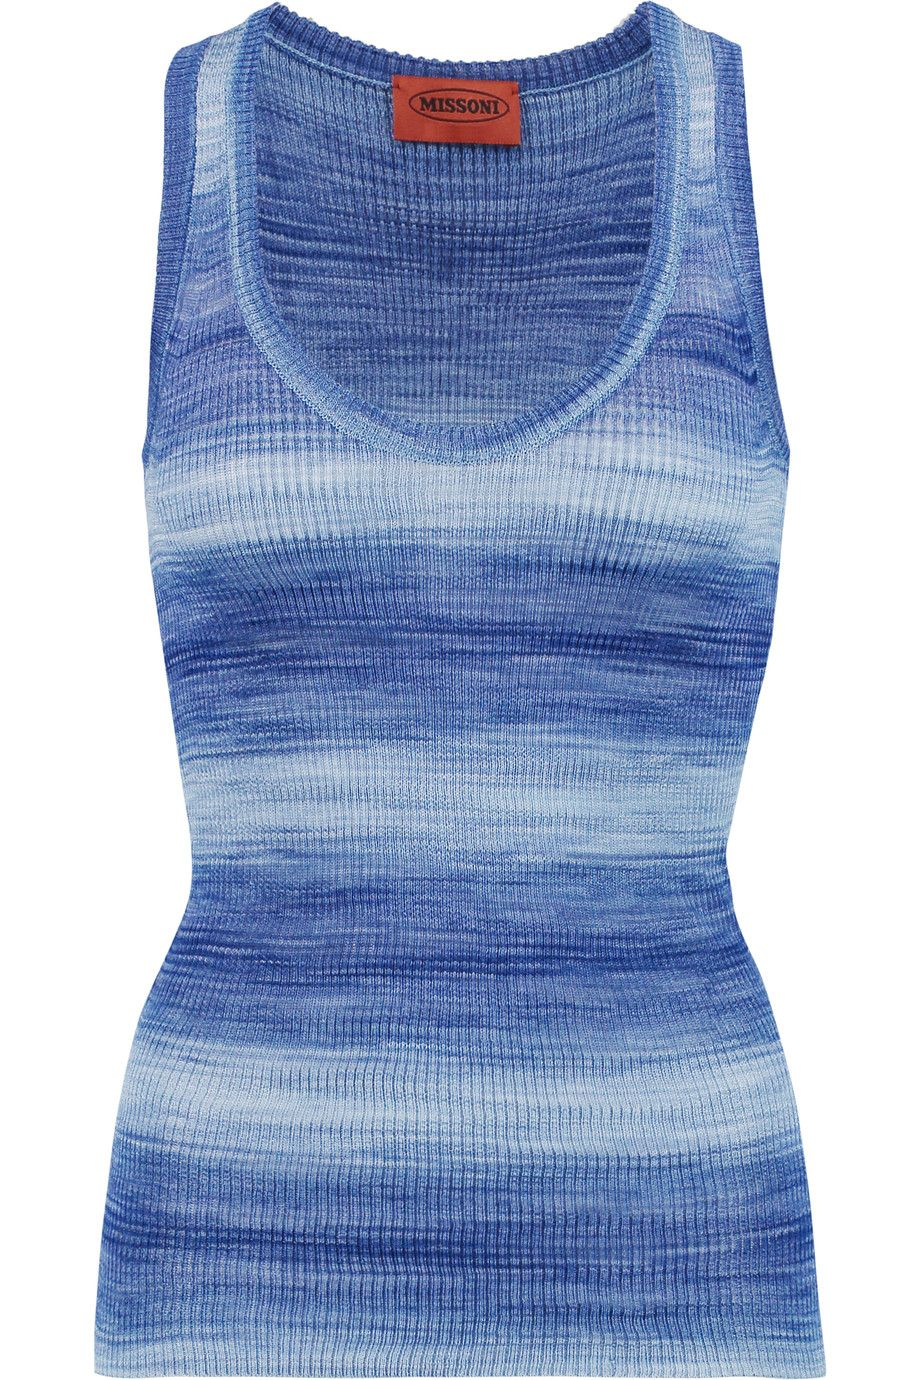 Shop on-sale Missoni Crochet-knit tank . Browse other discount designer Tops & more on The Most Fashionable Fashion Outlet, THE OUTNET.COM